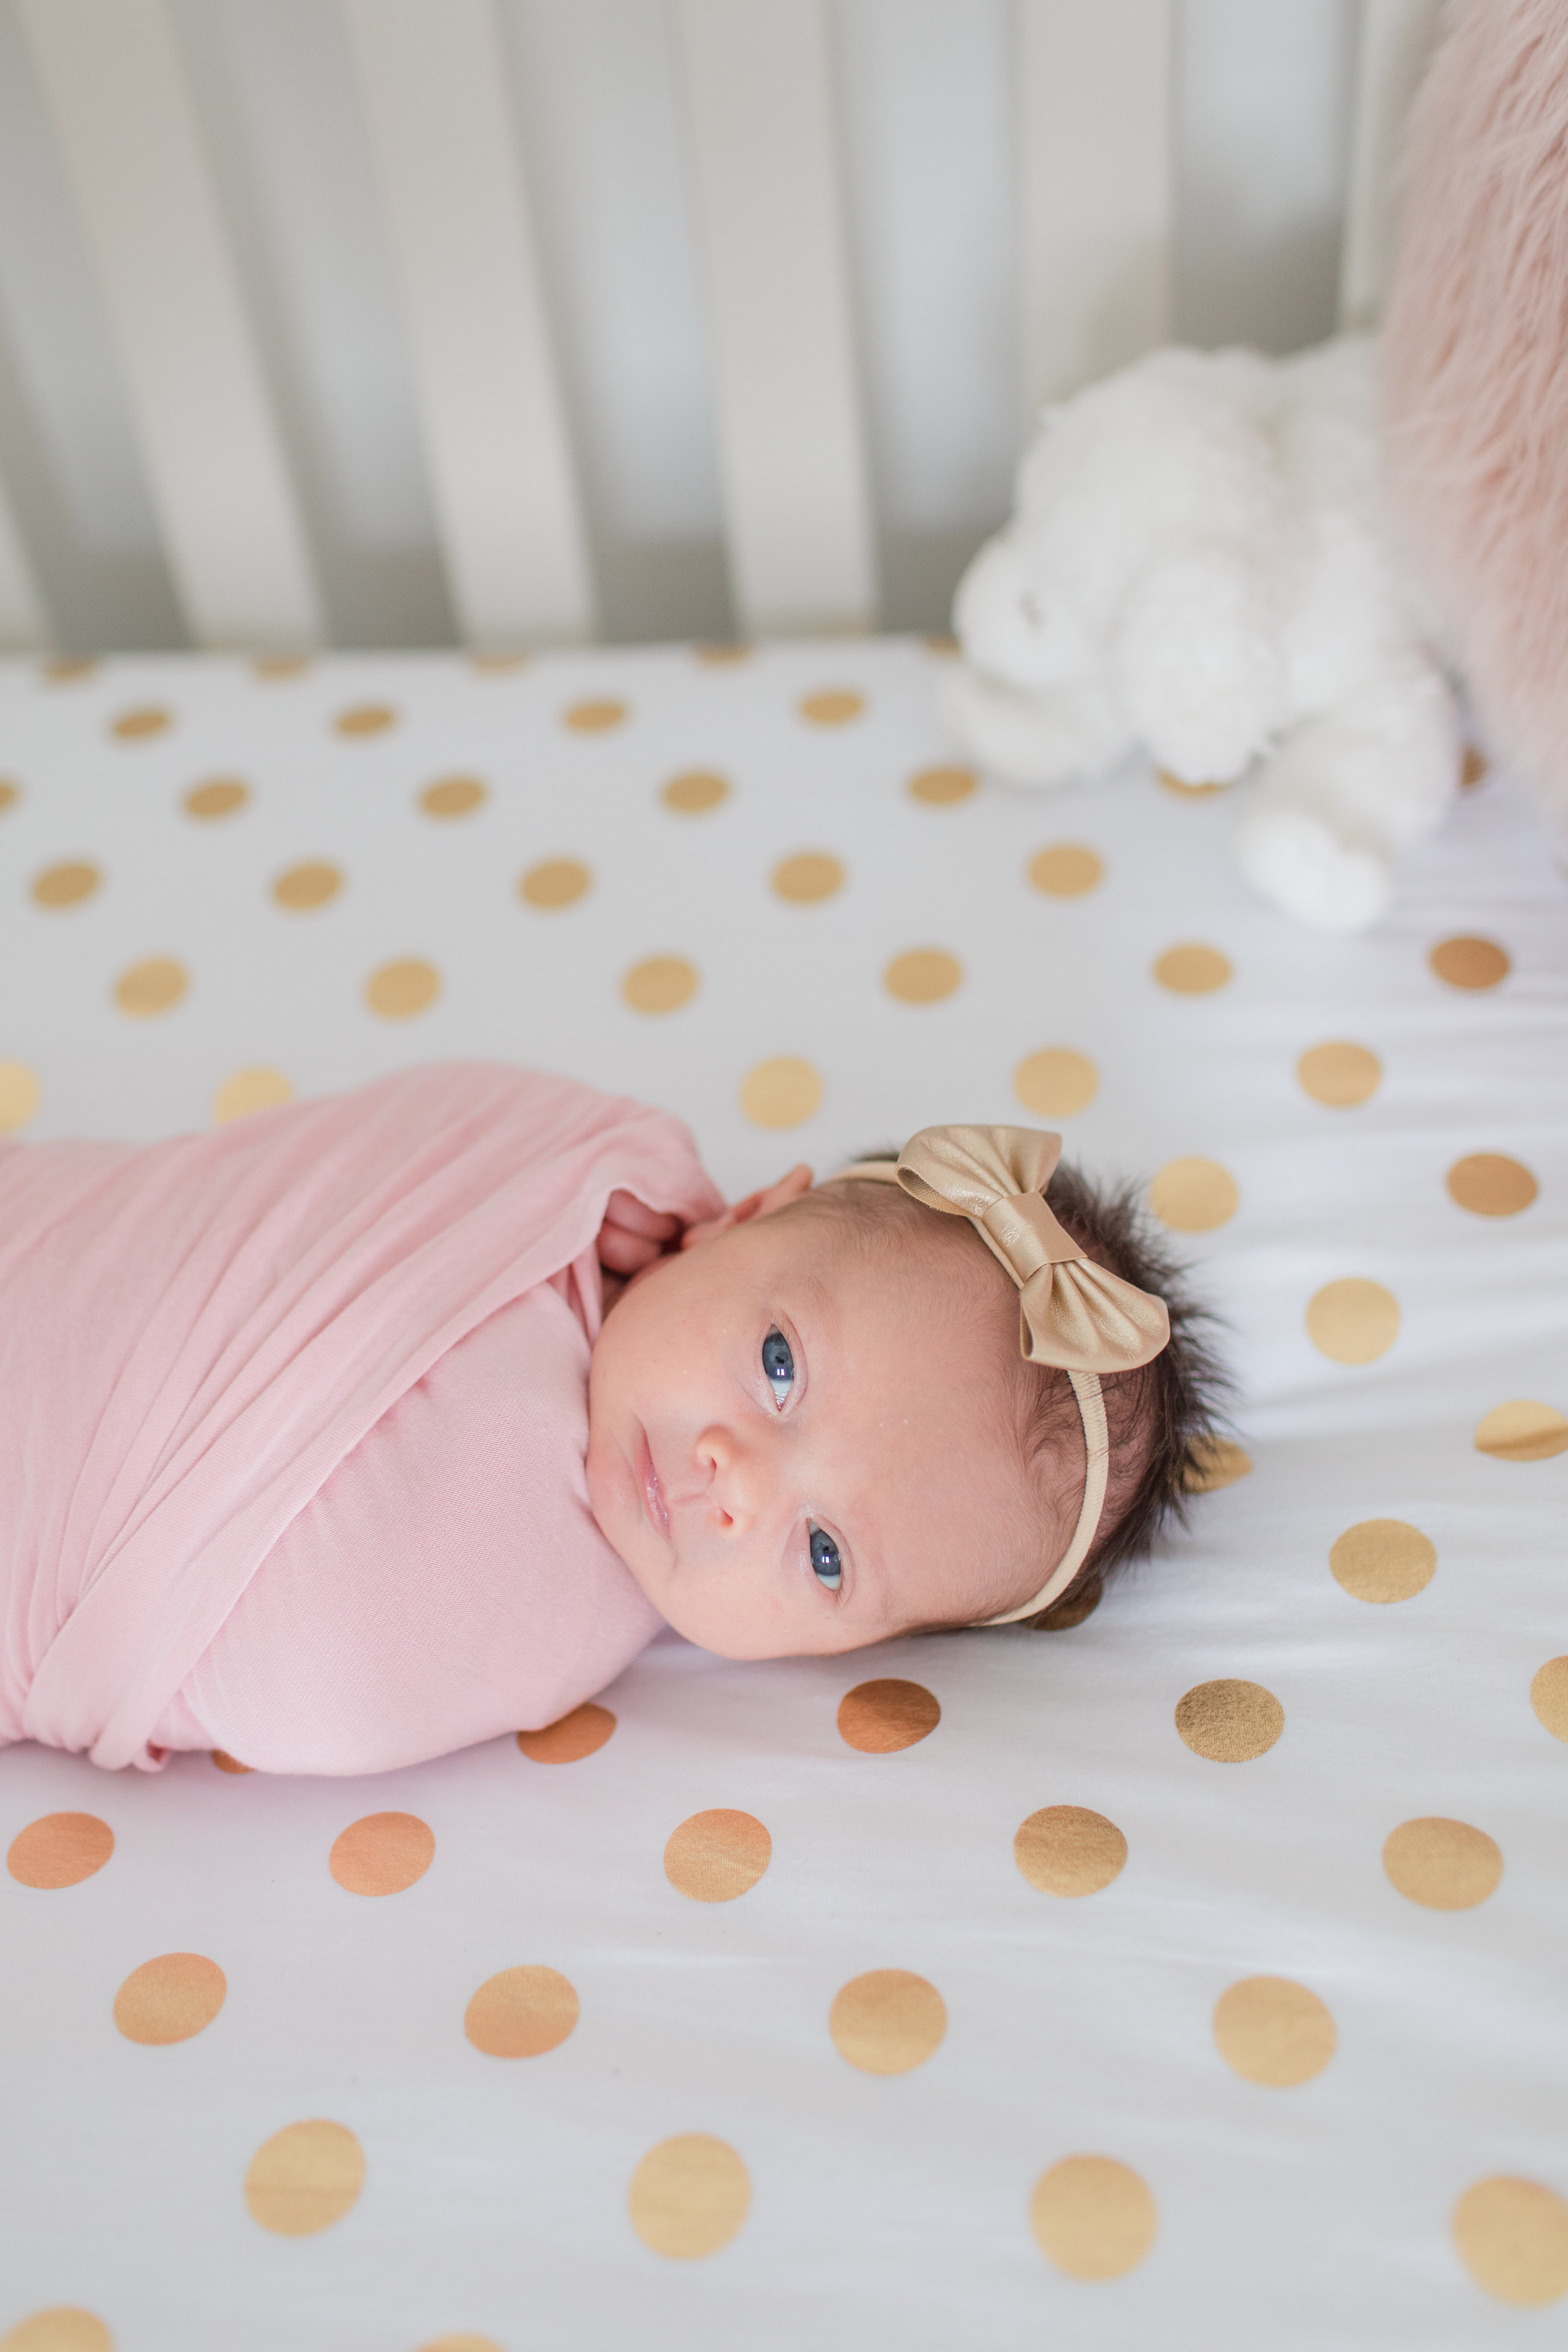 Newborn Baby Girl in a pink swaddle in her crib